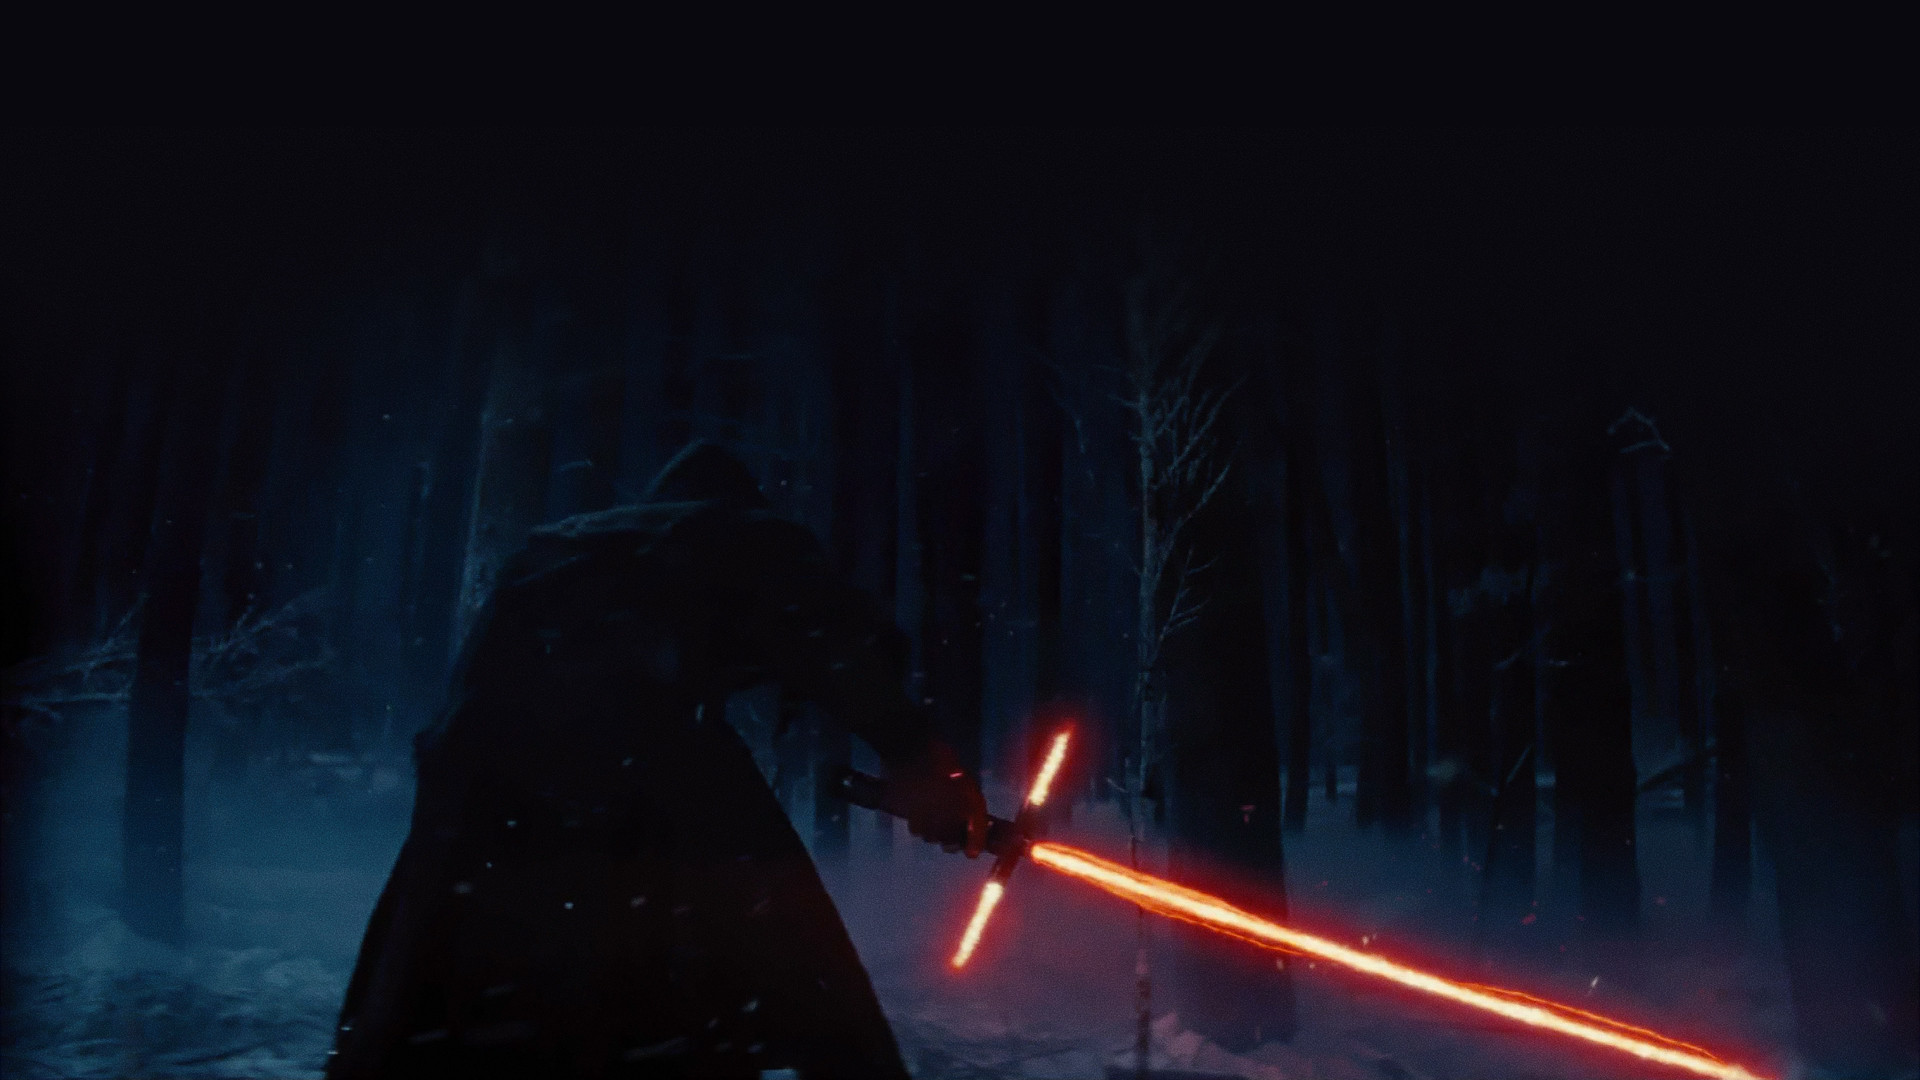 Star Wars The Force Awakens Wallpaper: Star Wars Screensavers And Wallpaper (60+ Images